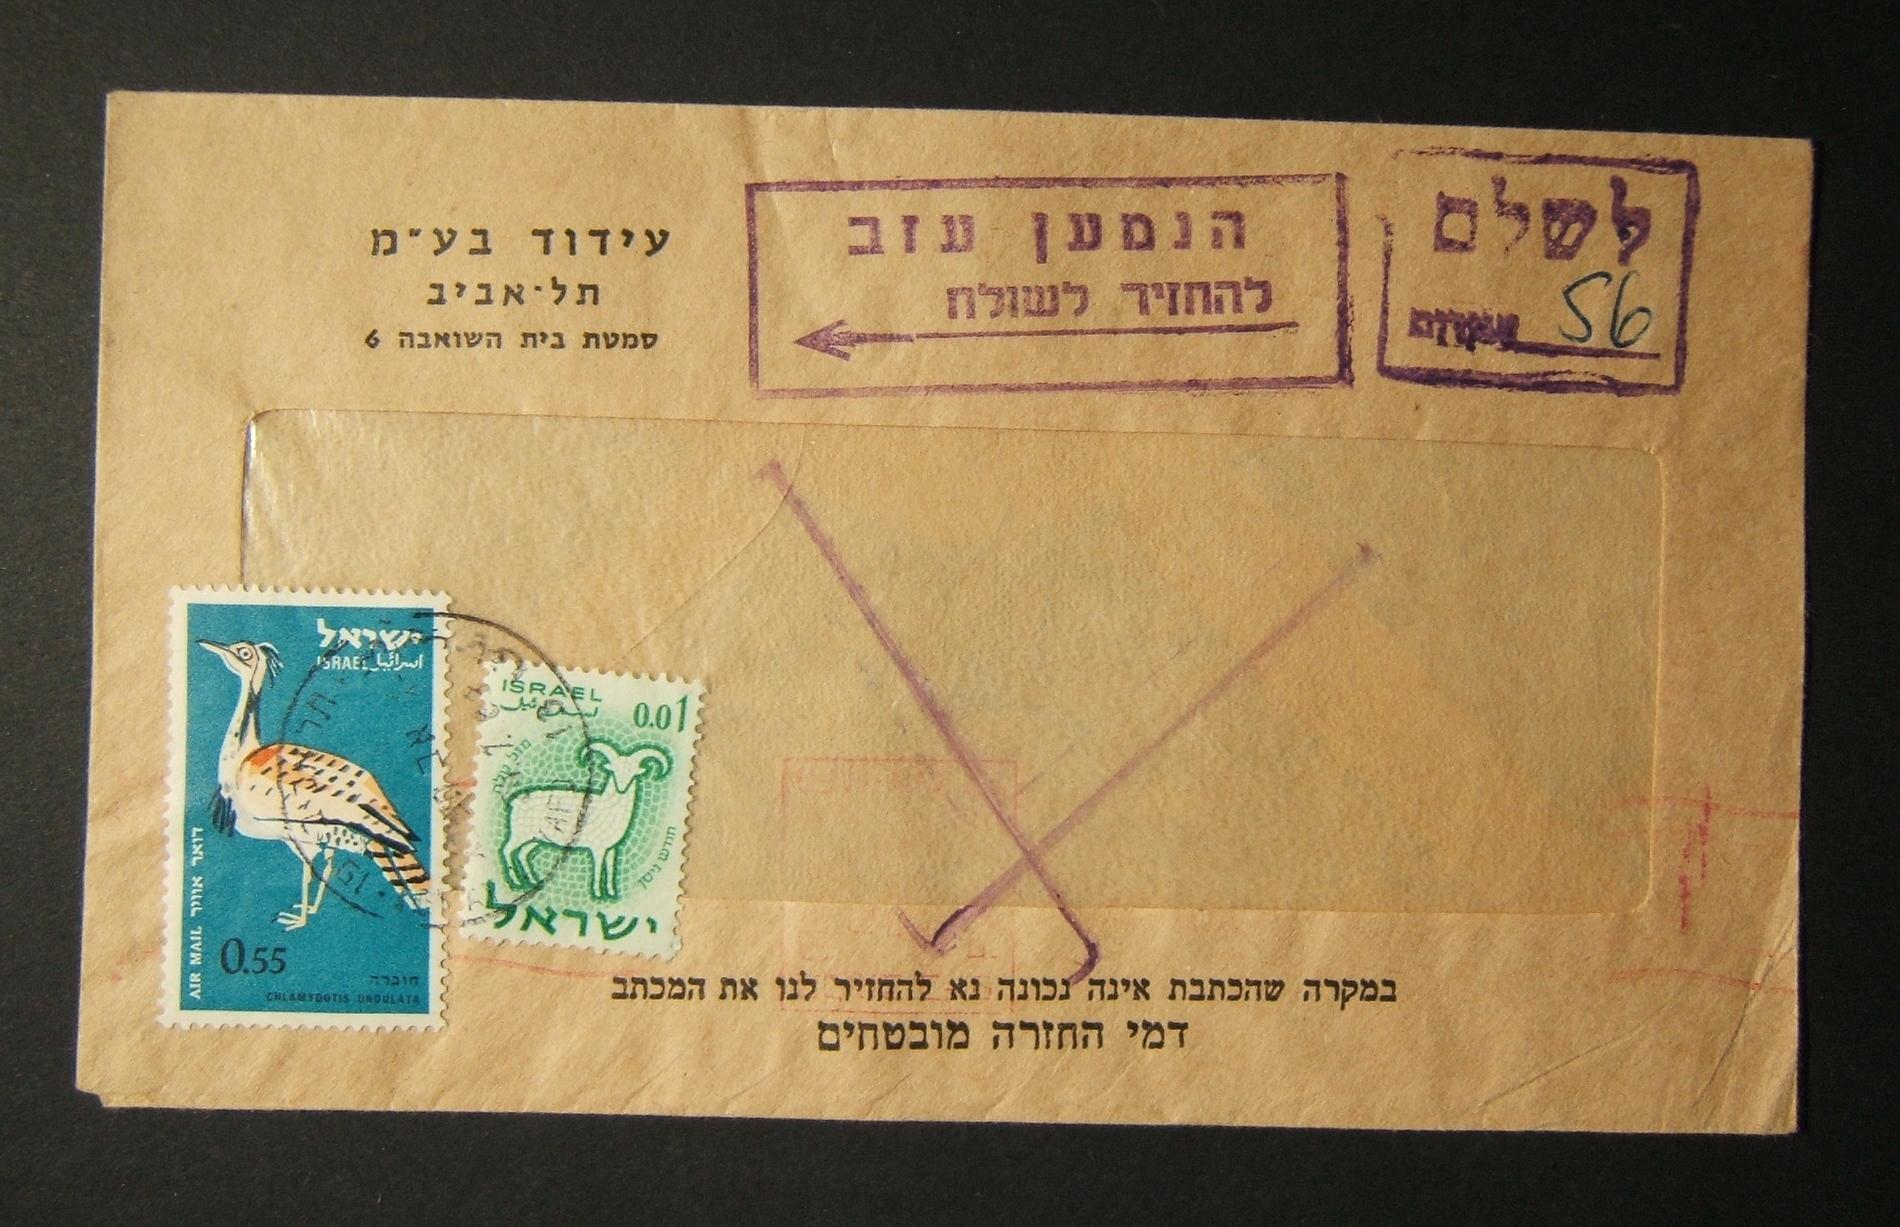 1963 domestic 'top of the pile' taxed franking: July 1963 printed matter cover ex TLV branch of Idud Ltd. and franked by machine prepayment (red imprint at base) at domestic 8 Ag P